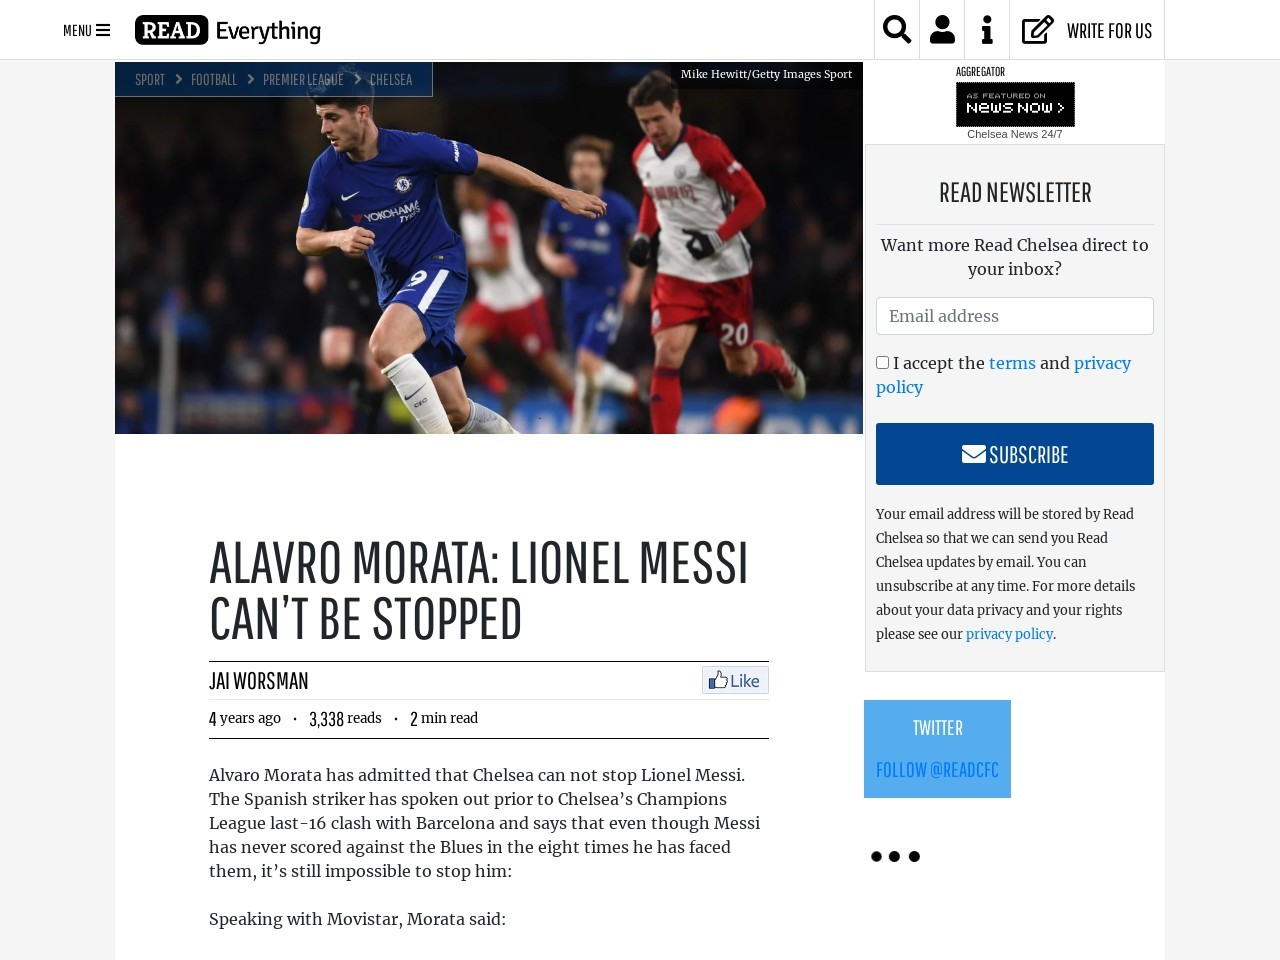 Alavro Morata: Lionel Messi can't be stopped